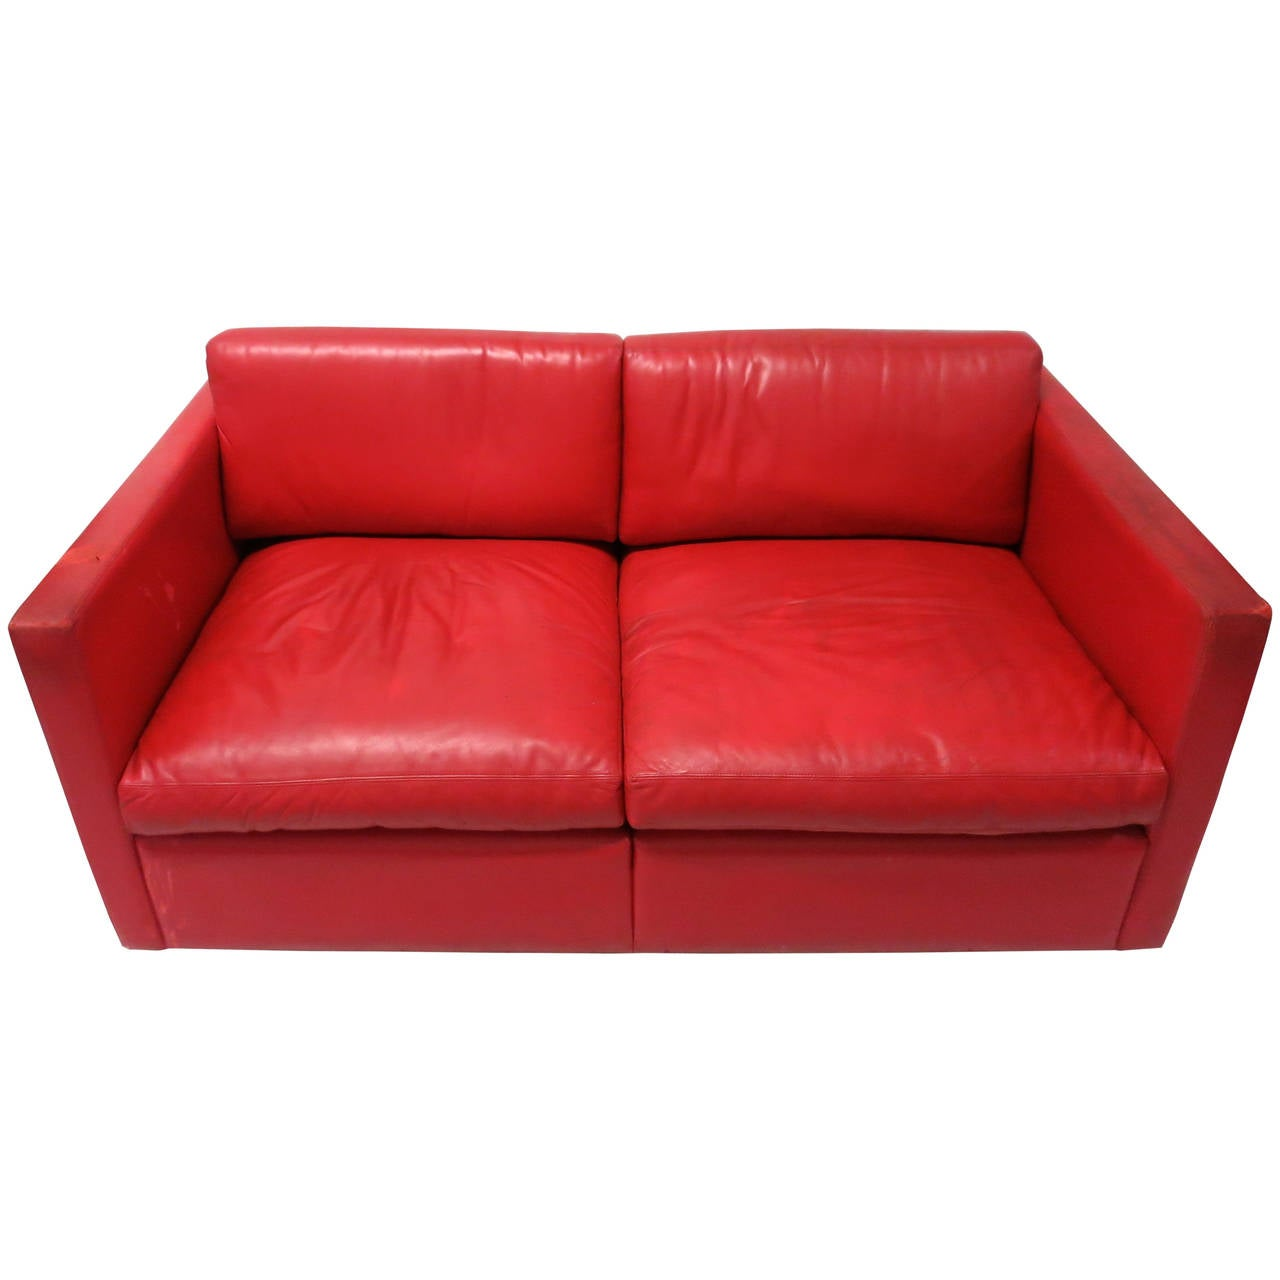 red leather two seater sofa how do i dump my circa 1970 made in usa for